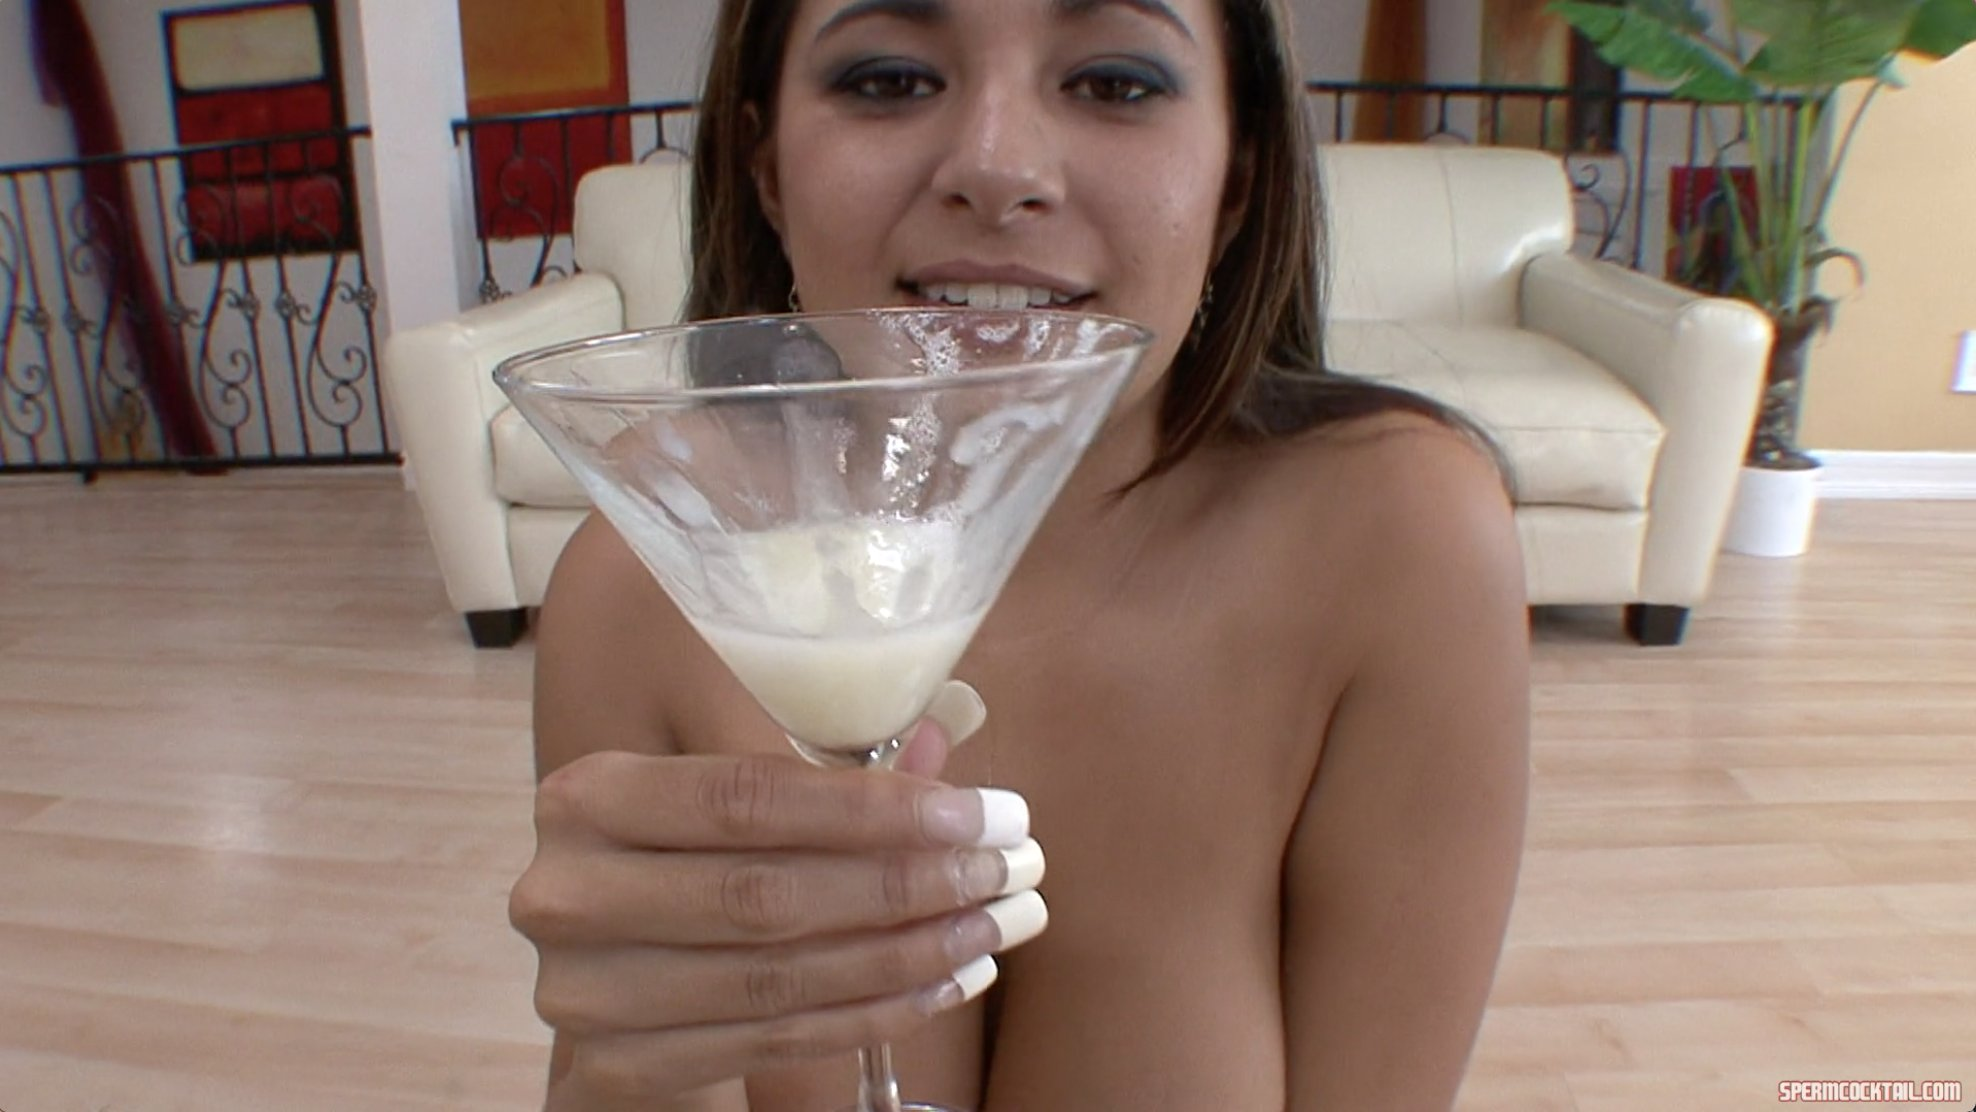 Thats free sperm cocktail clips wife Fuck!